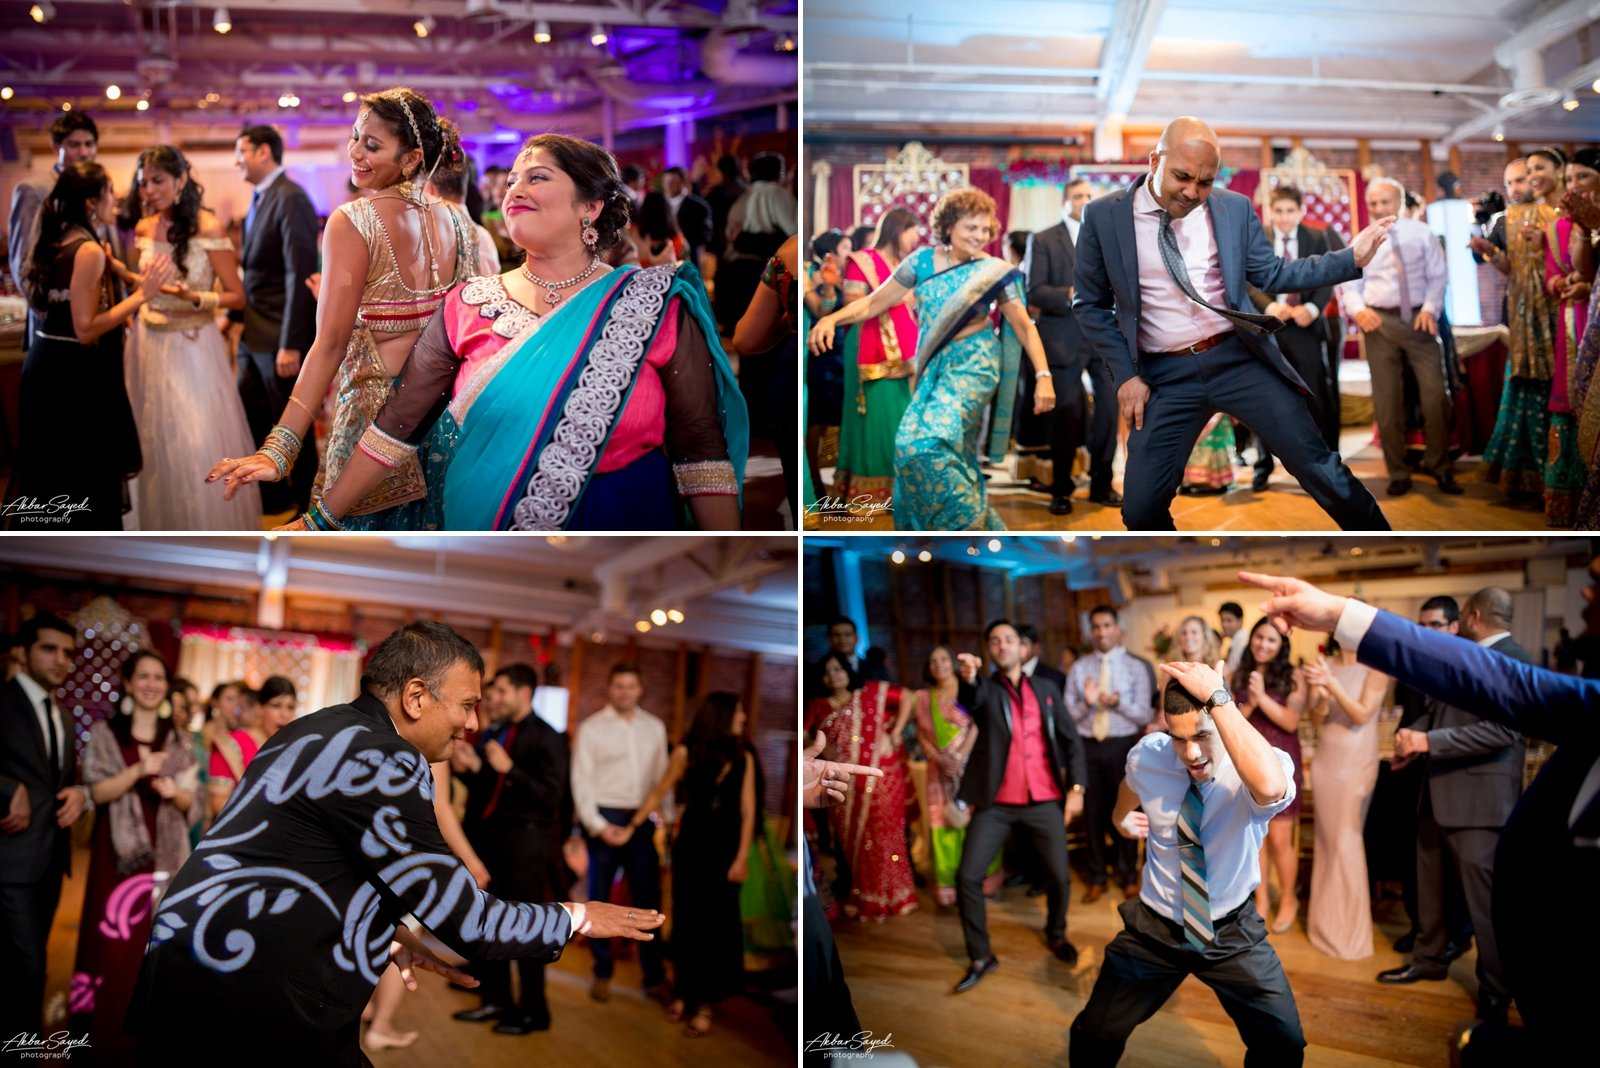 A photo collage of dancing at a Indian Iranian fusion wedding reception at the American Visionary Art Museum in Baltimore, Maryland.